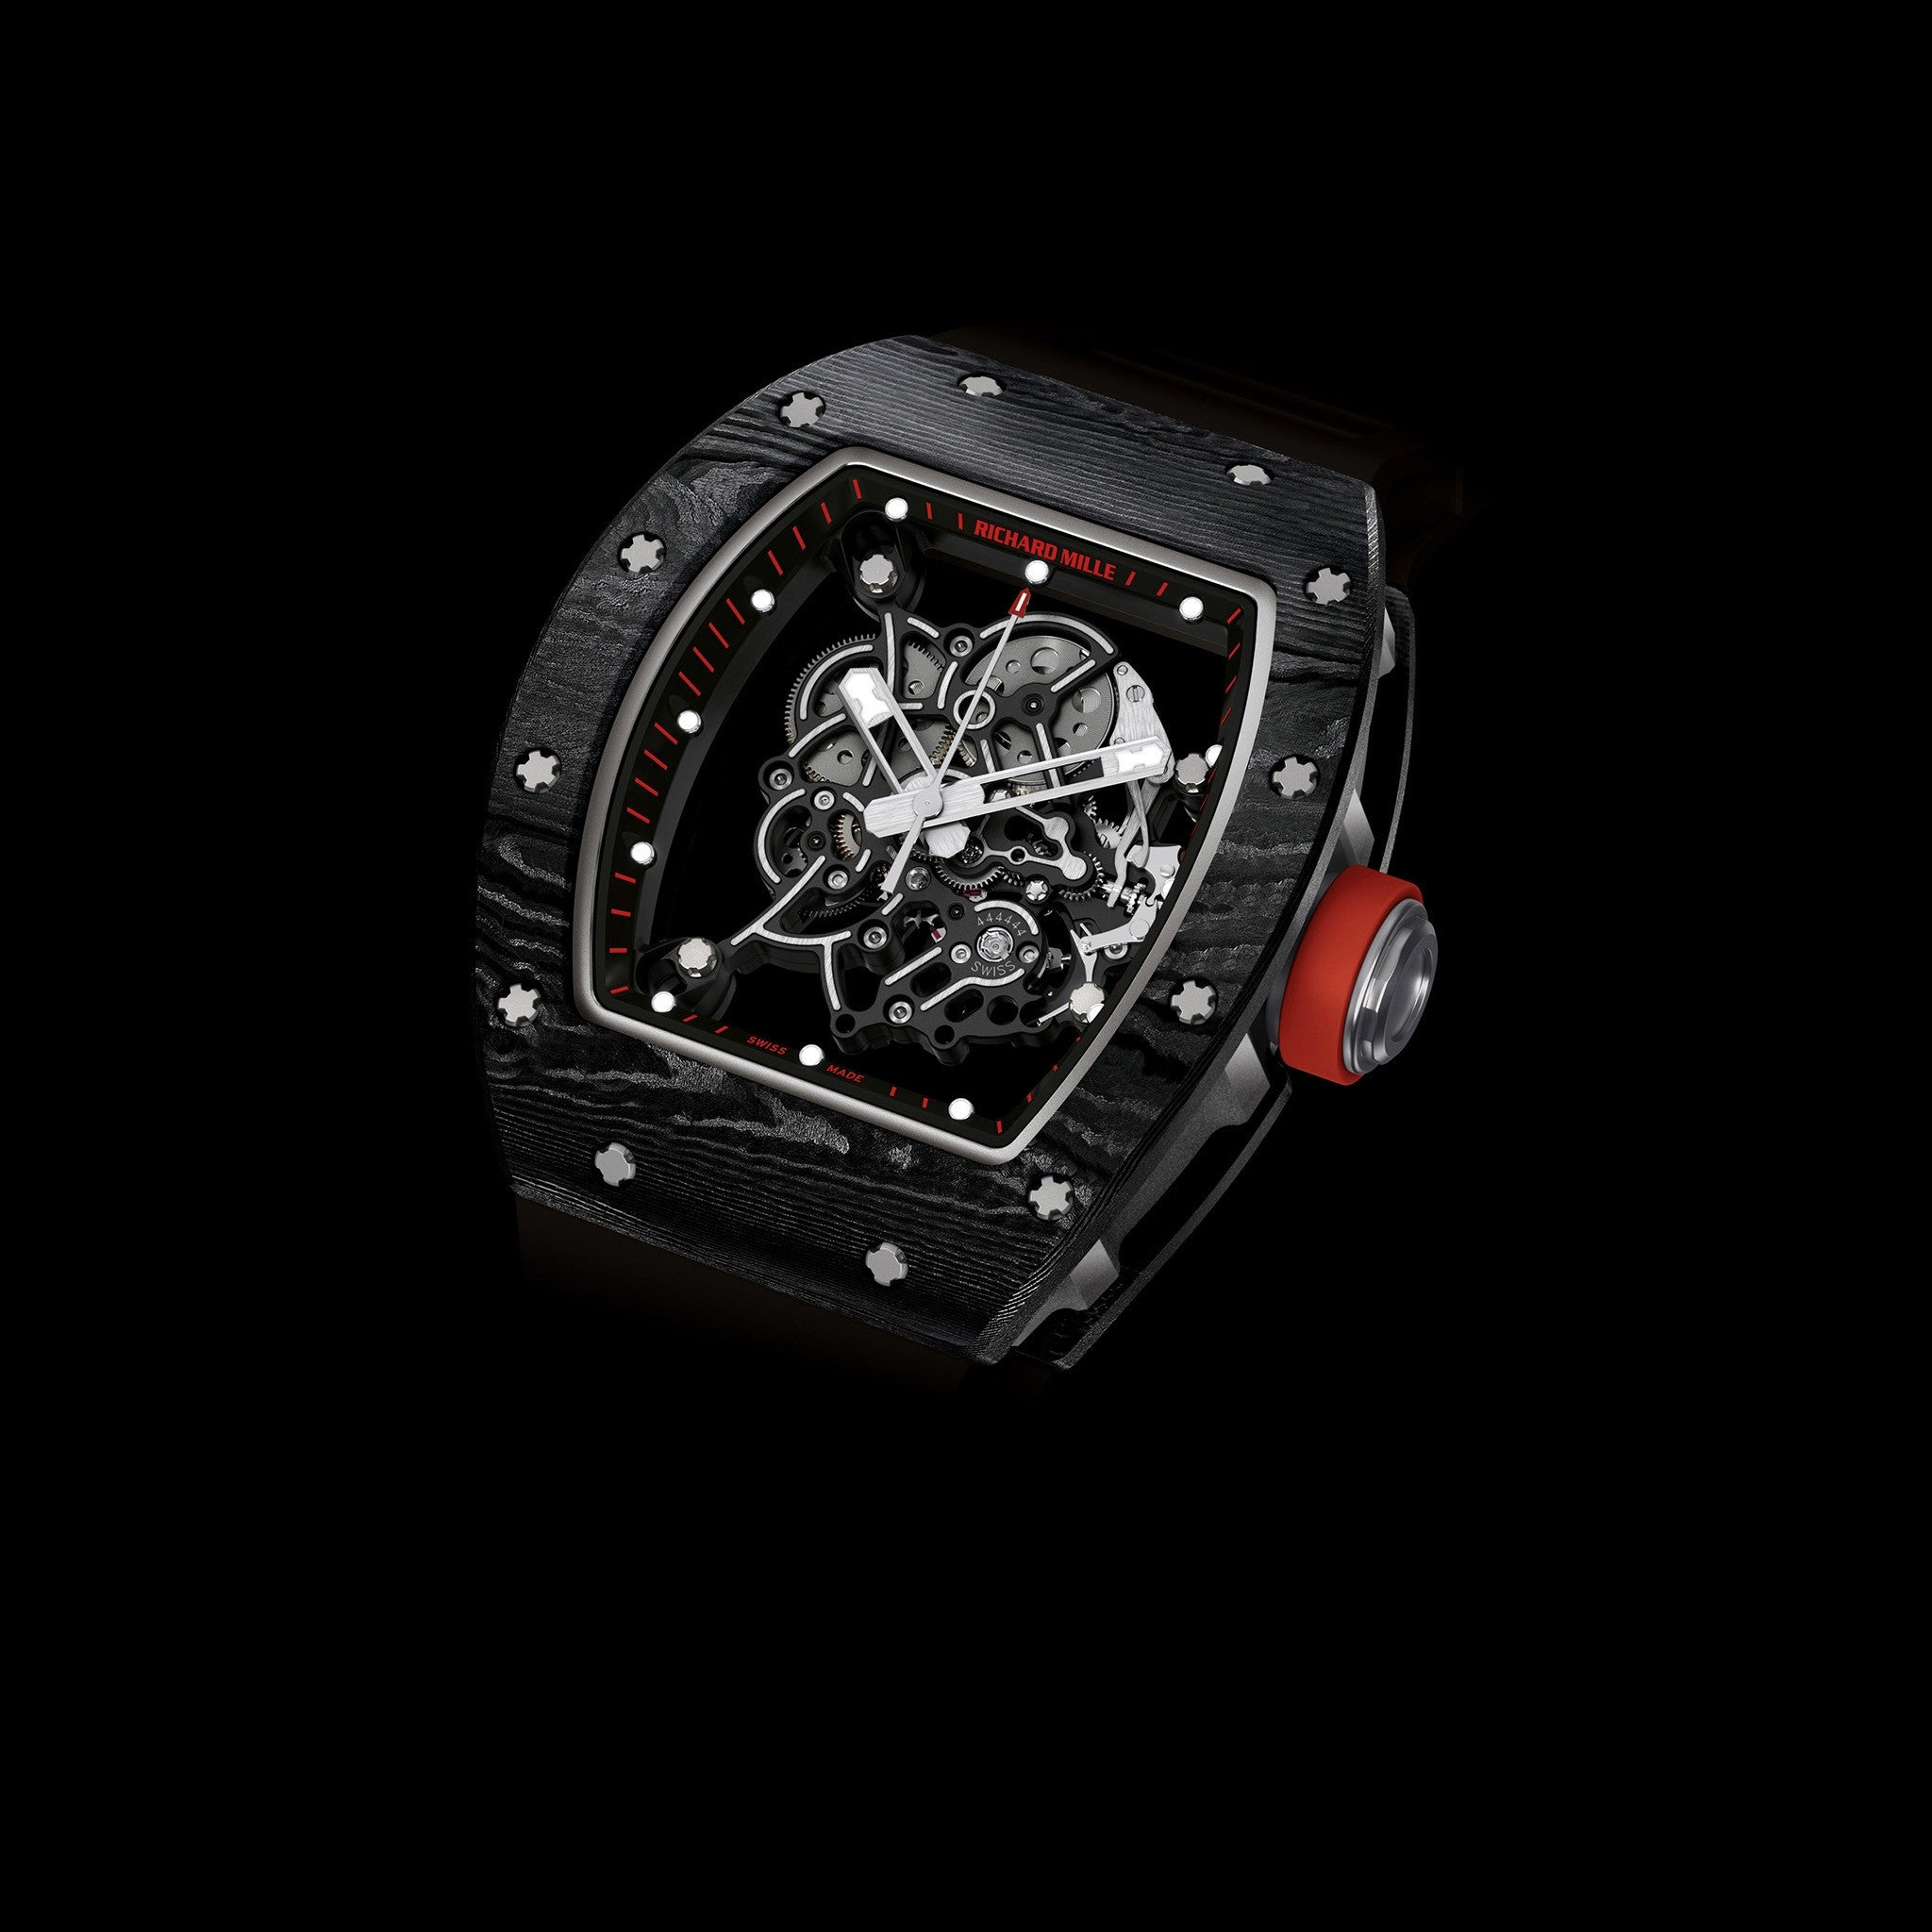 RM 055 Dark Legend - Richard Mille